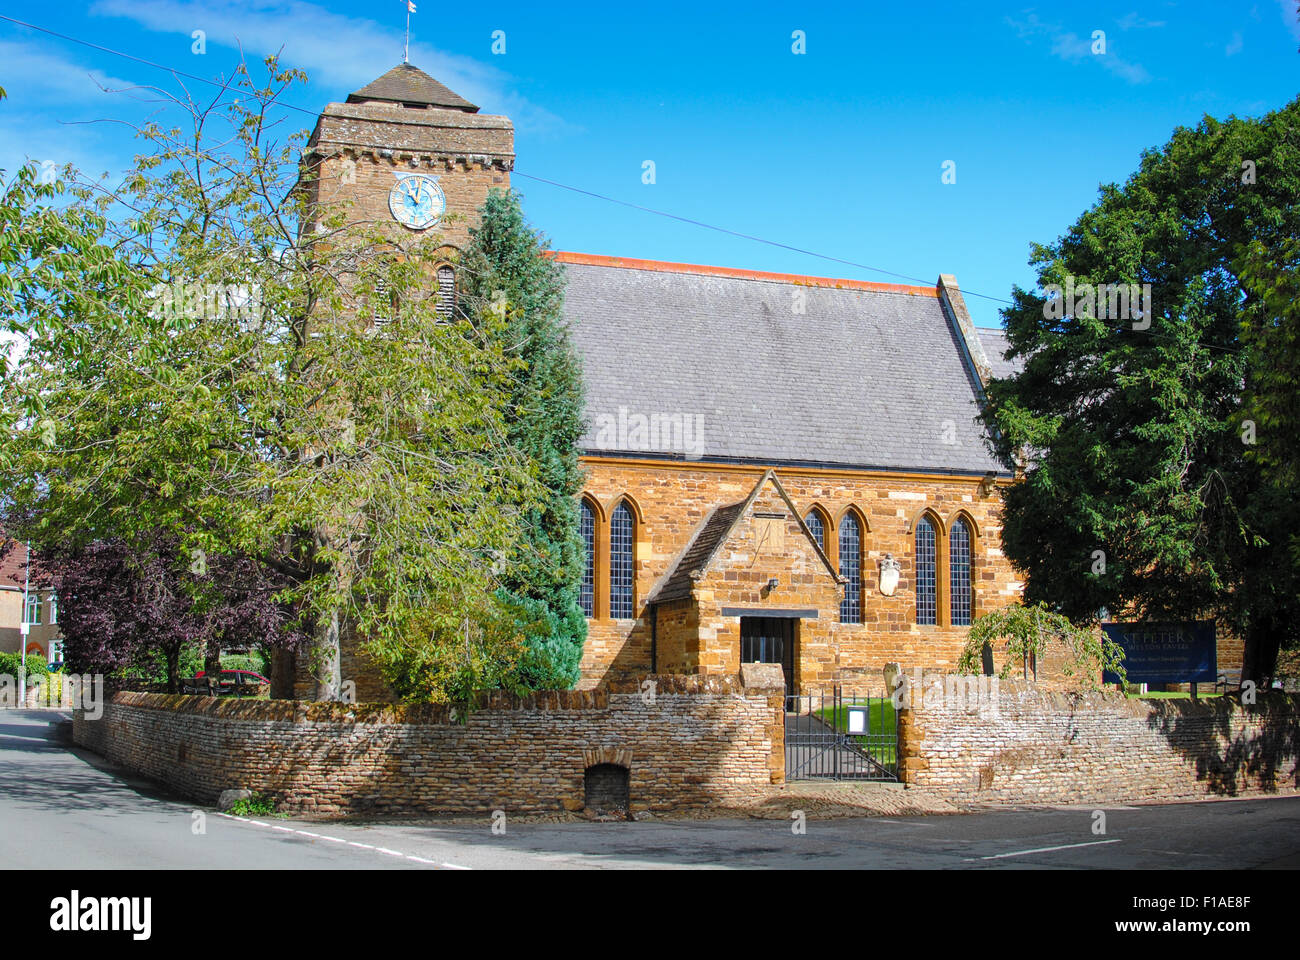 St Peters Church Weston favell village Northants - Stock Image